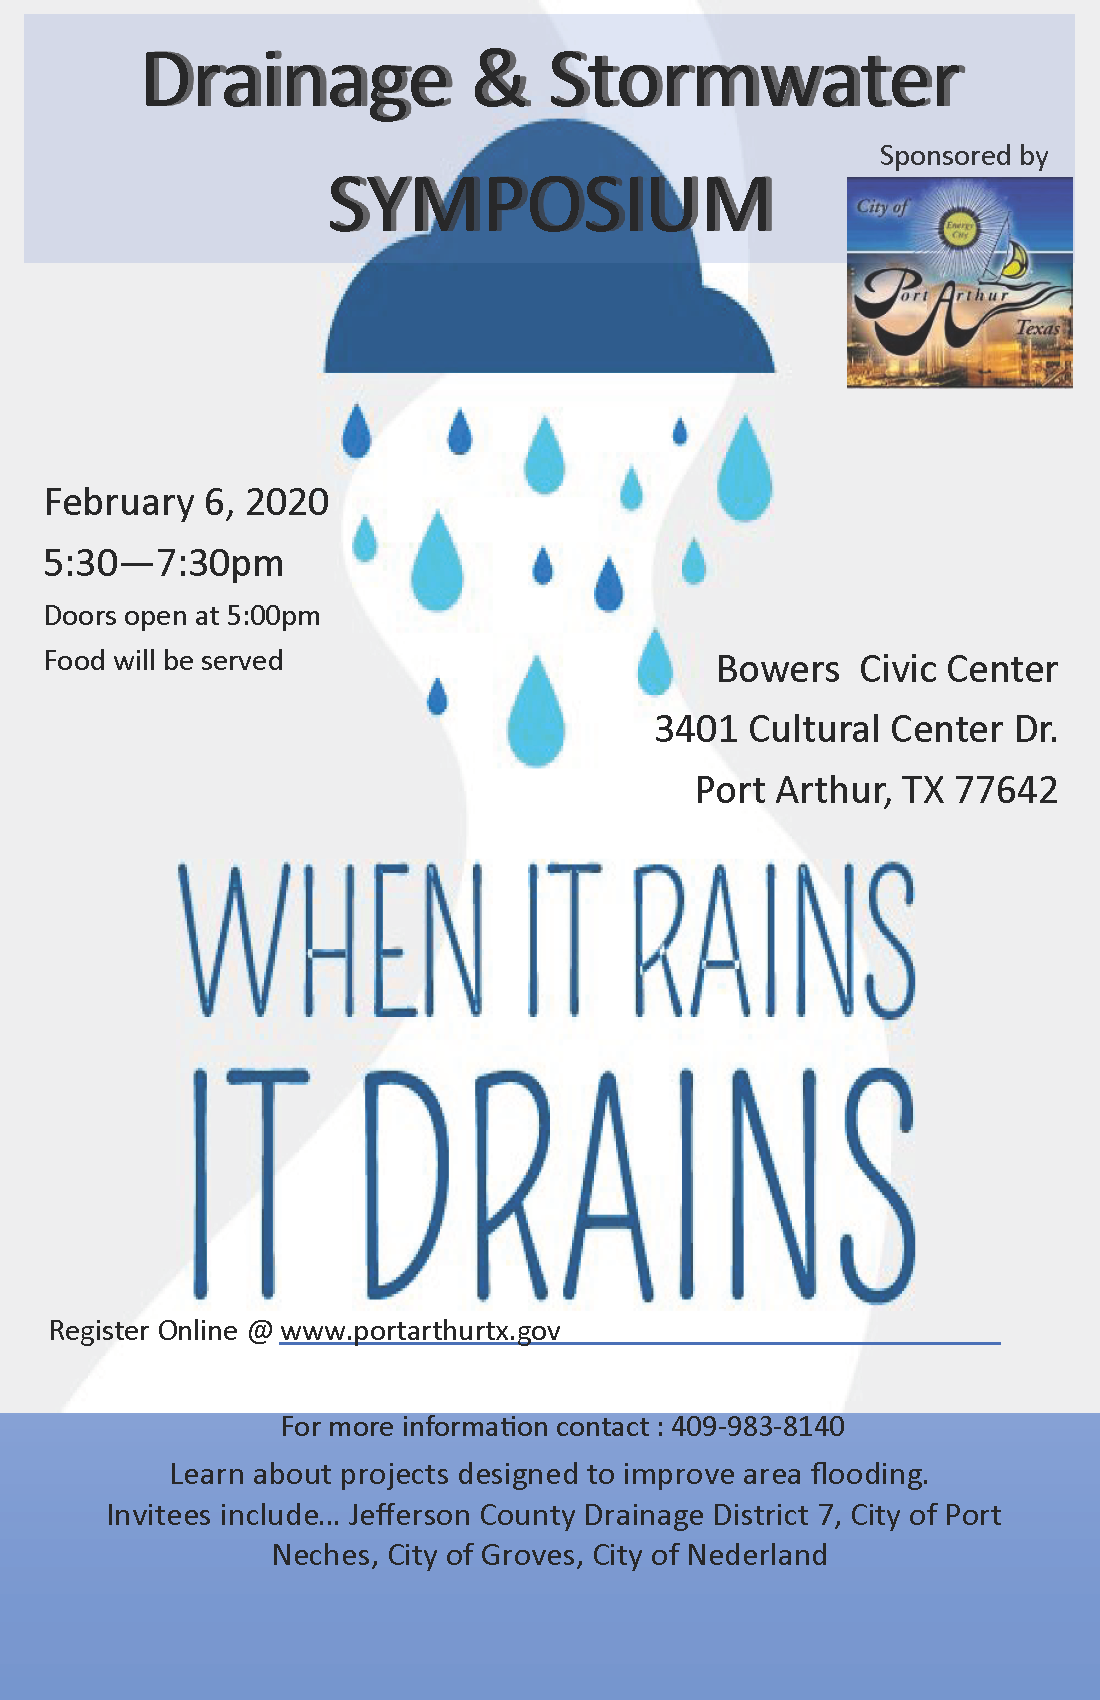 Drainage, Stormwater Symposium Flyer Opens in new window